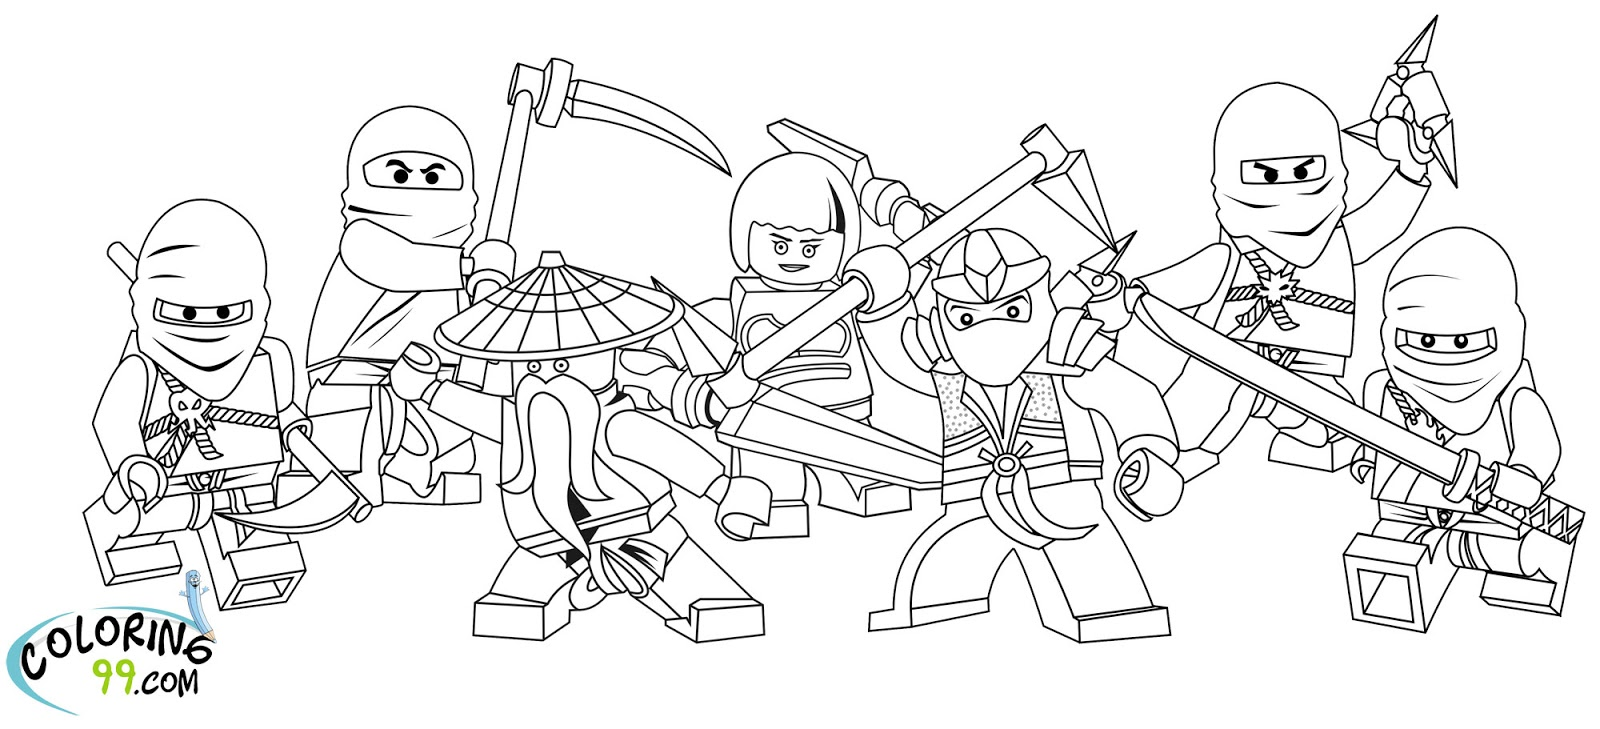 Lego Ninjago Coloring Pages Minister Coloring Lego Color Sheet